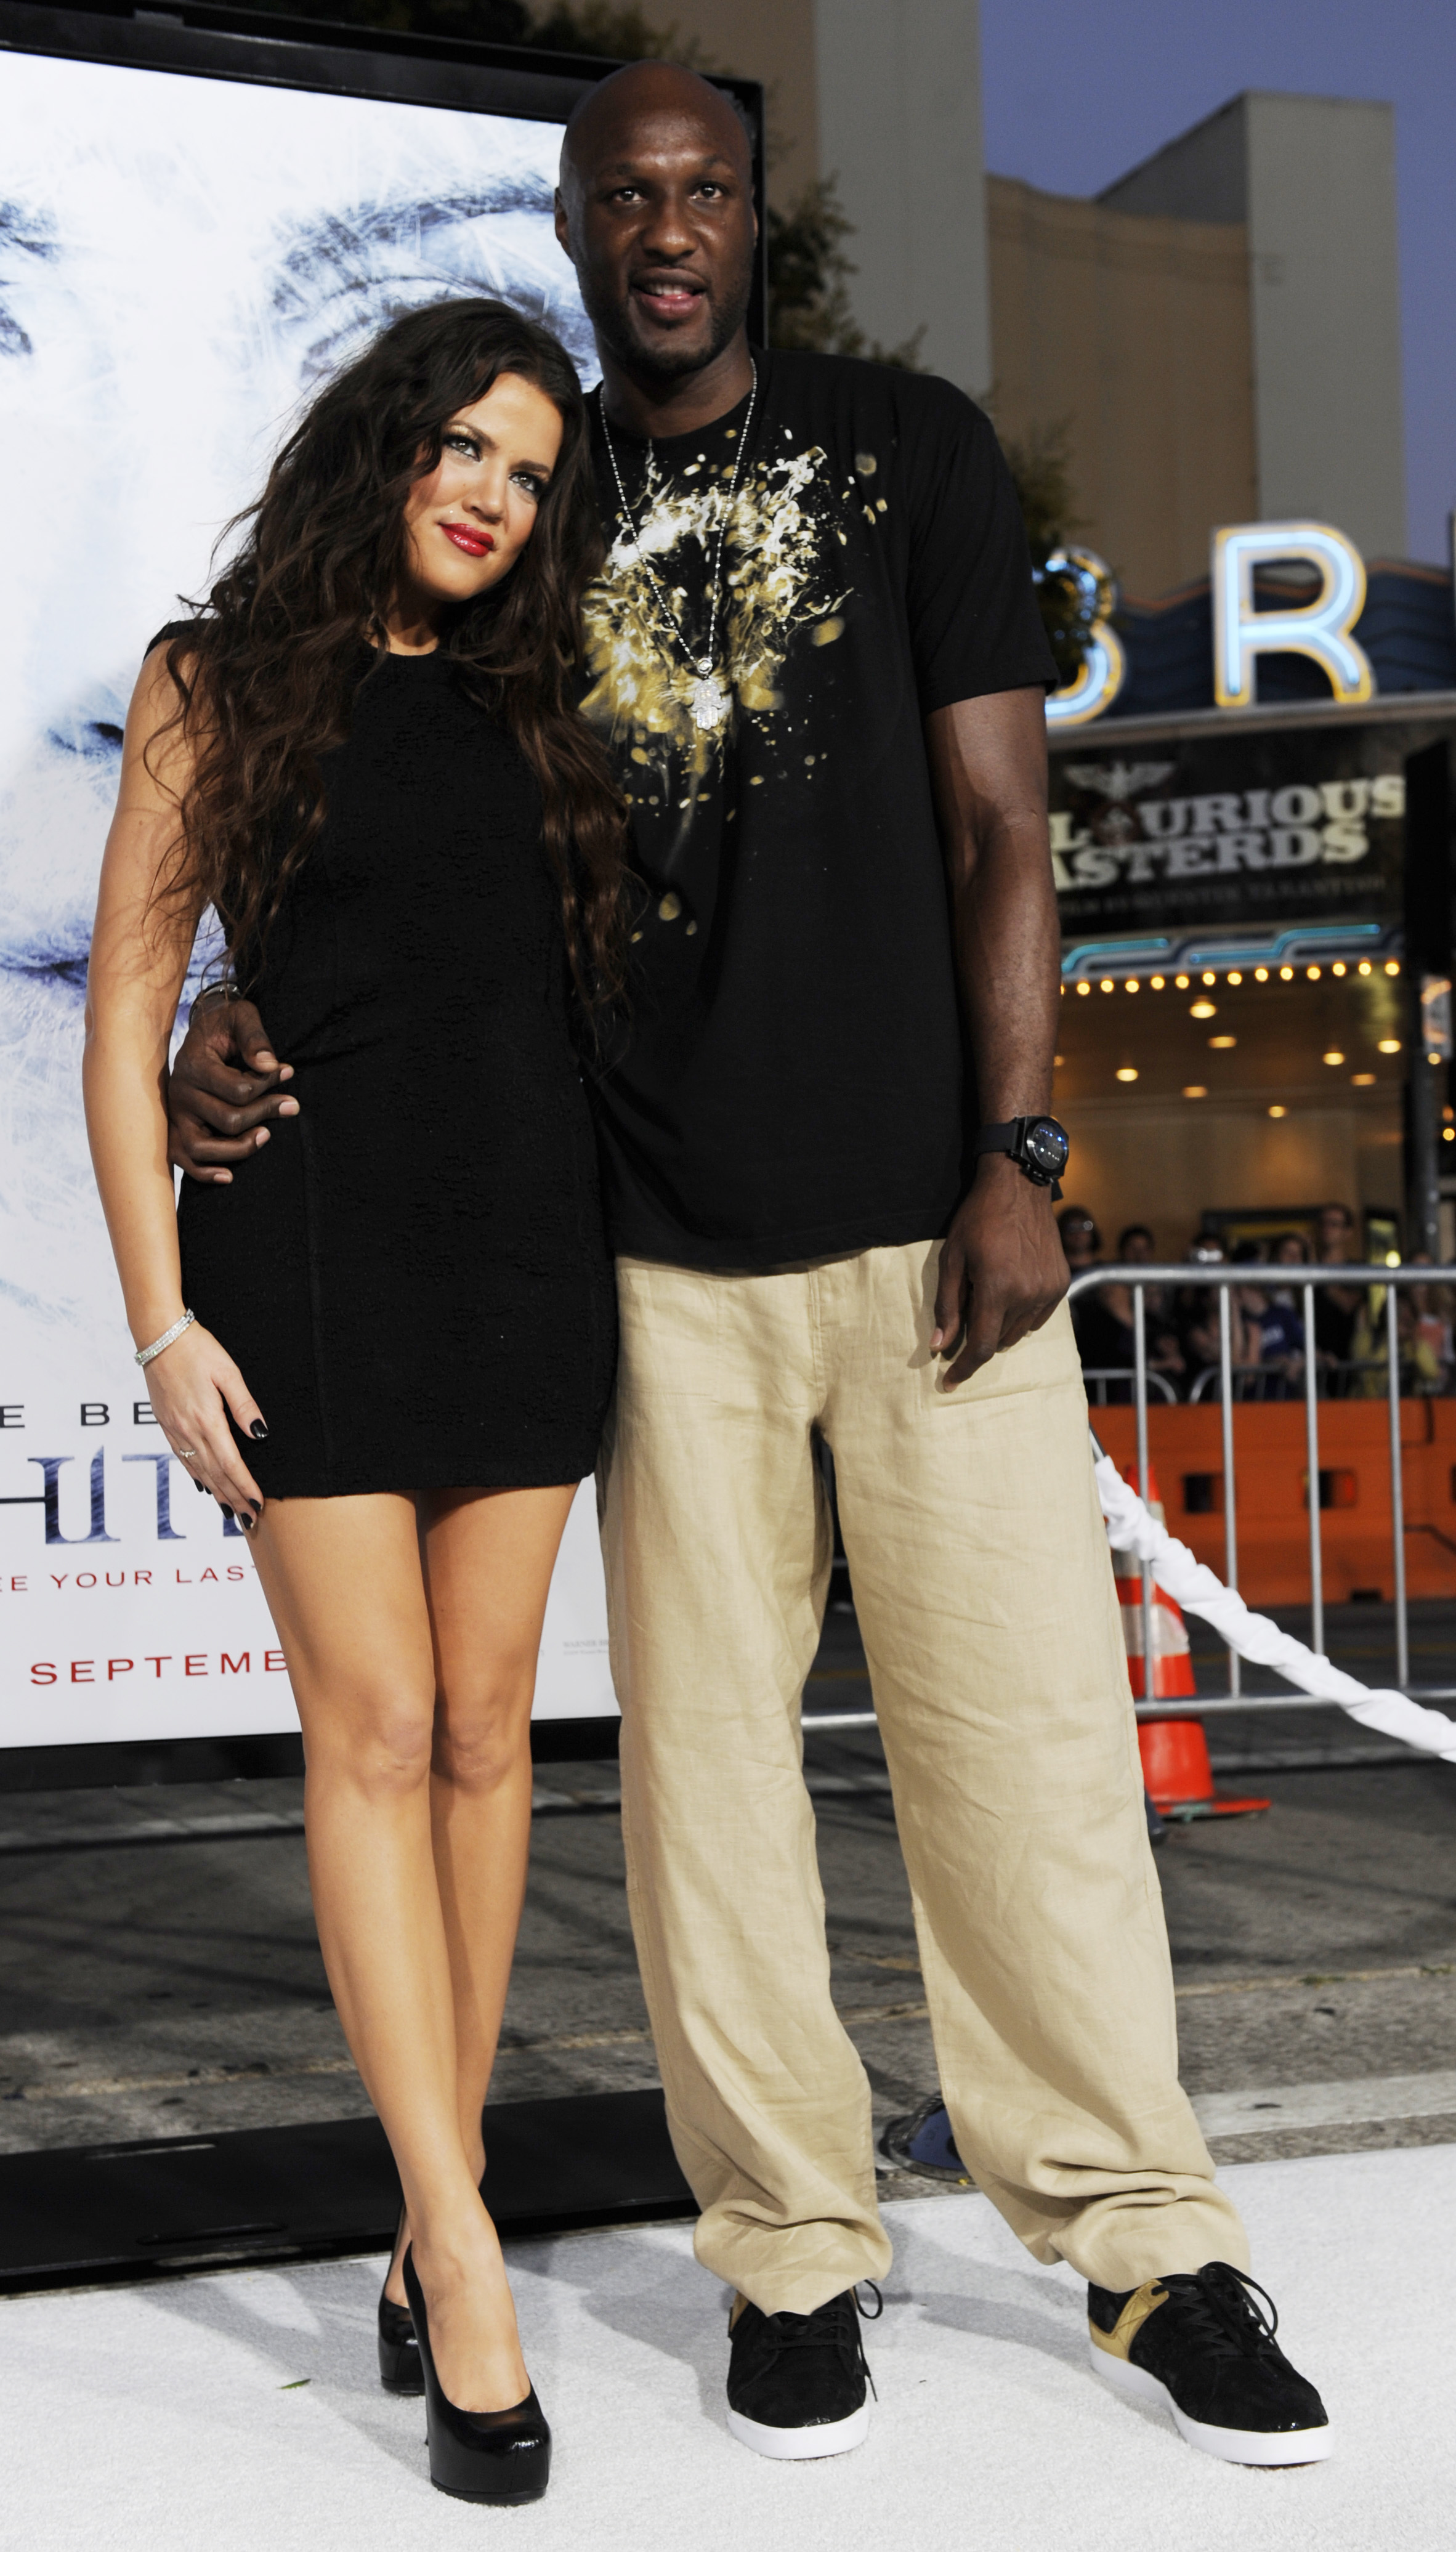 Lamar Odom 'refuses to sign divorce papers': Report